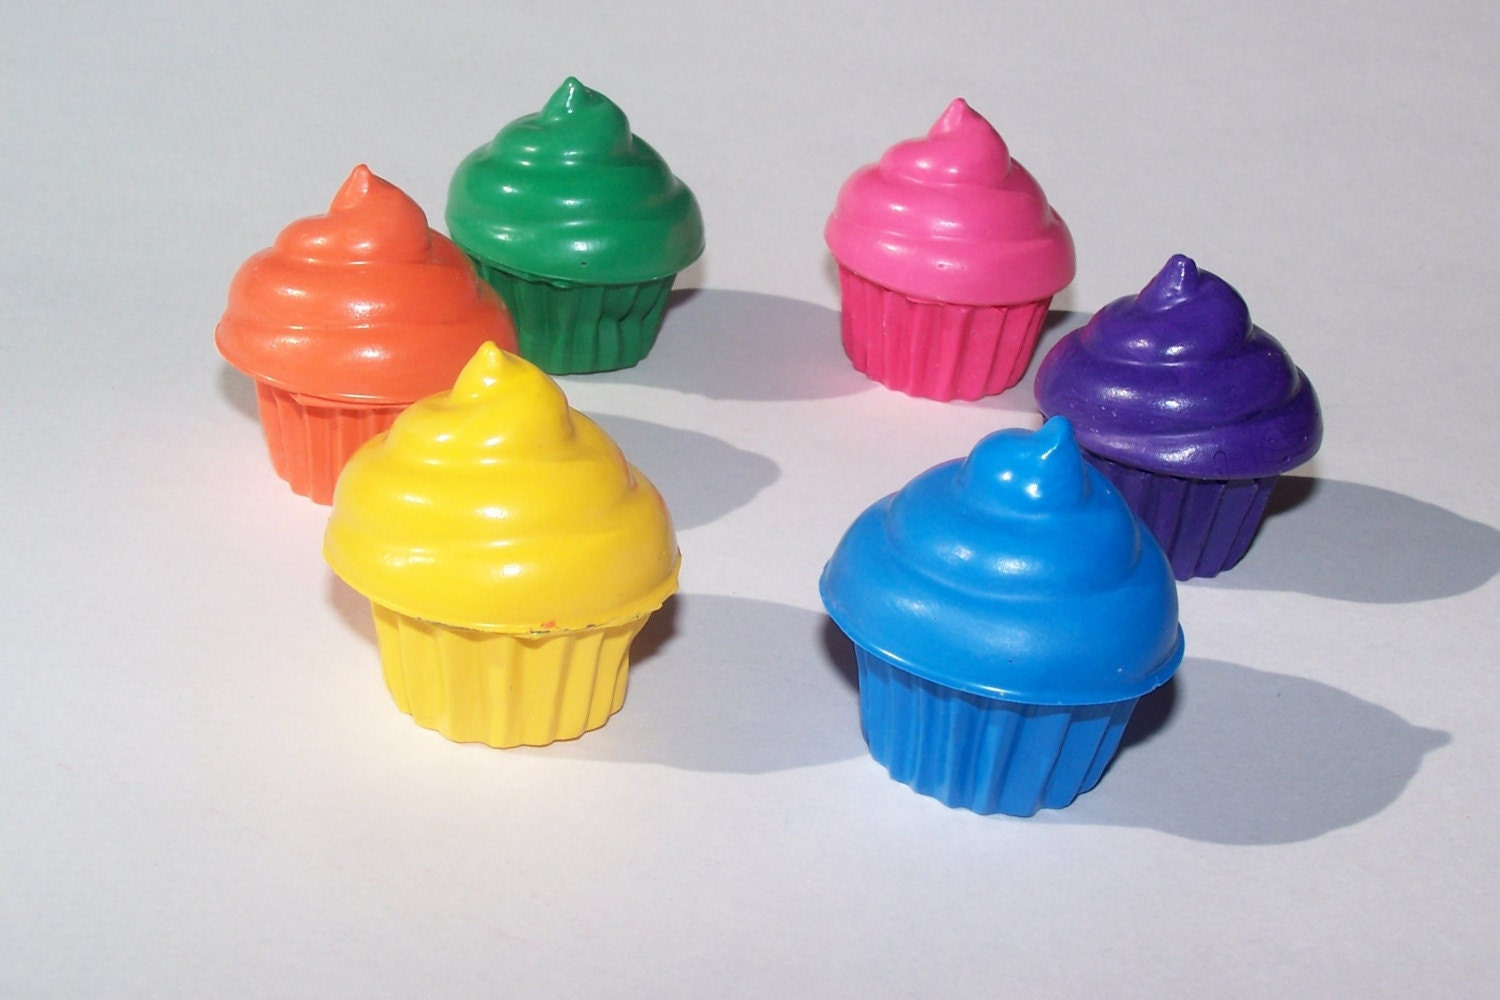 Half a Dozen Creamy Cupcake Crayons-- Packaged and Ready for Gift Giving